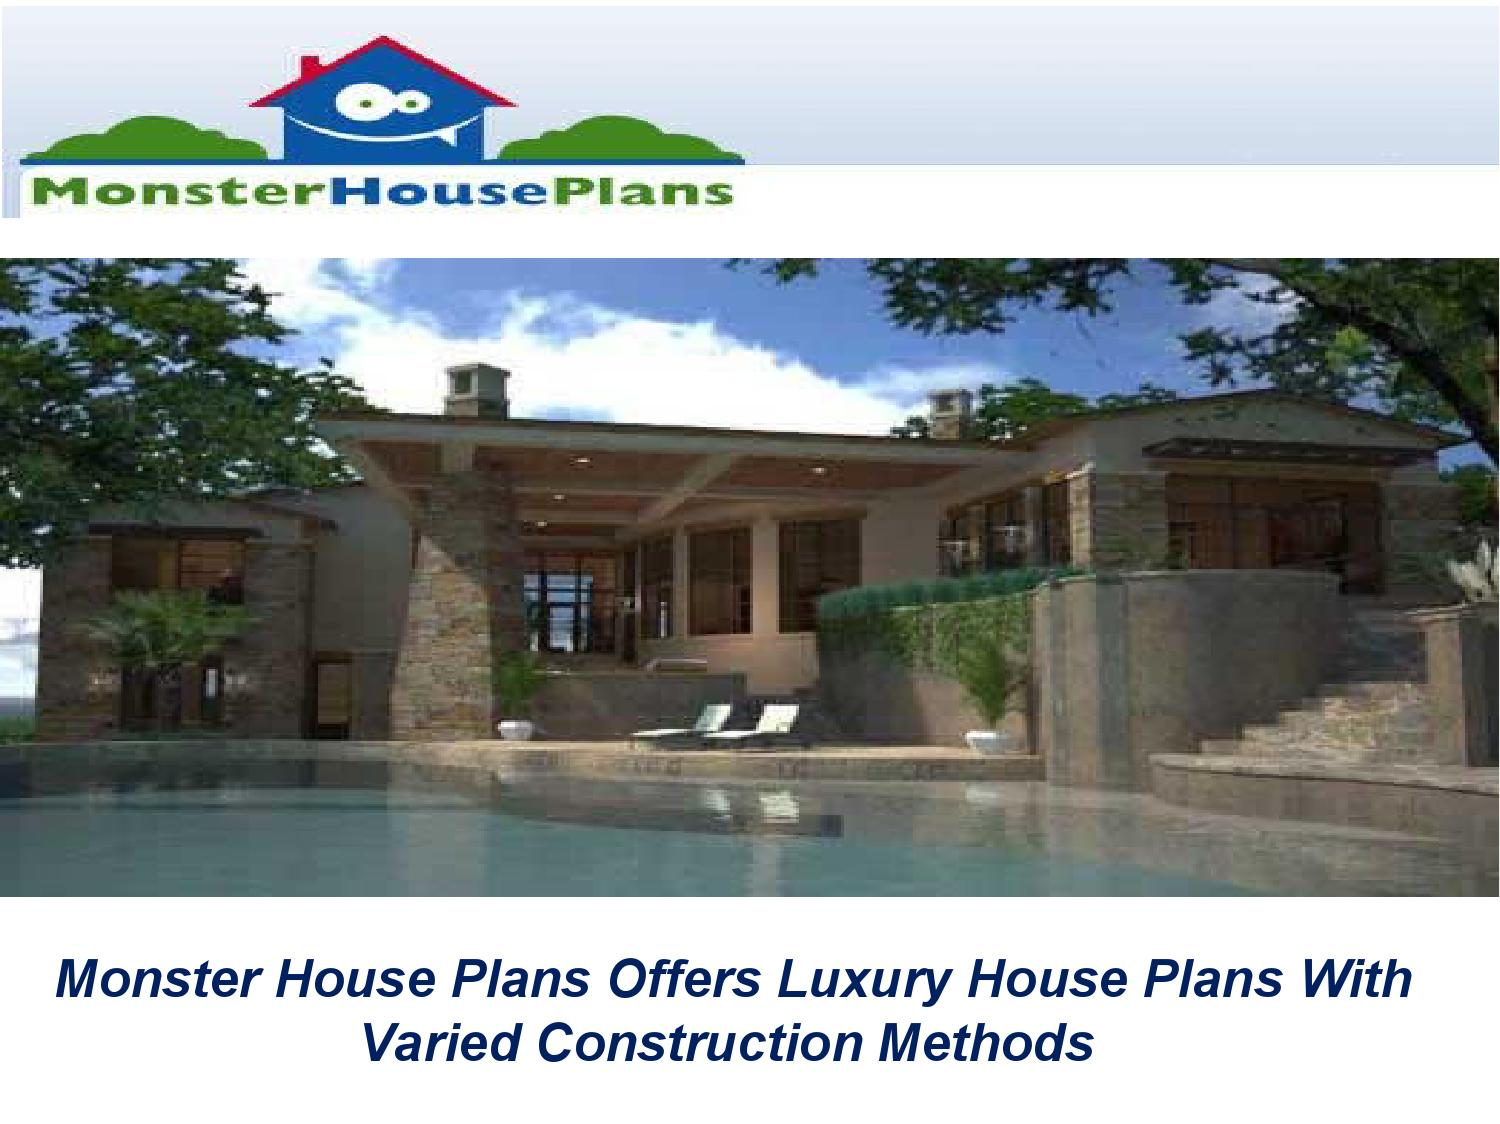 Monster house plans offers luxury house plans with varied for Monster house floor plans